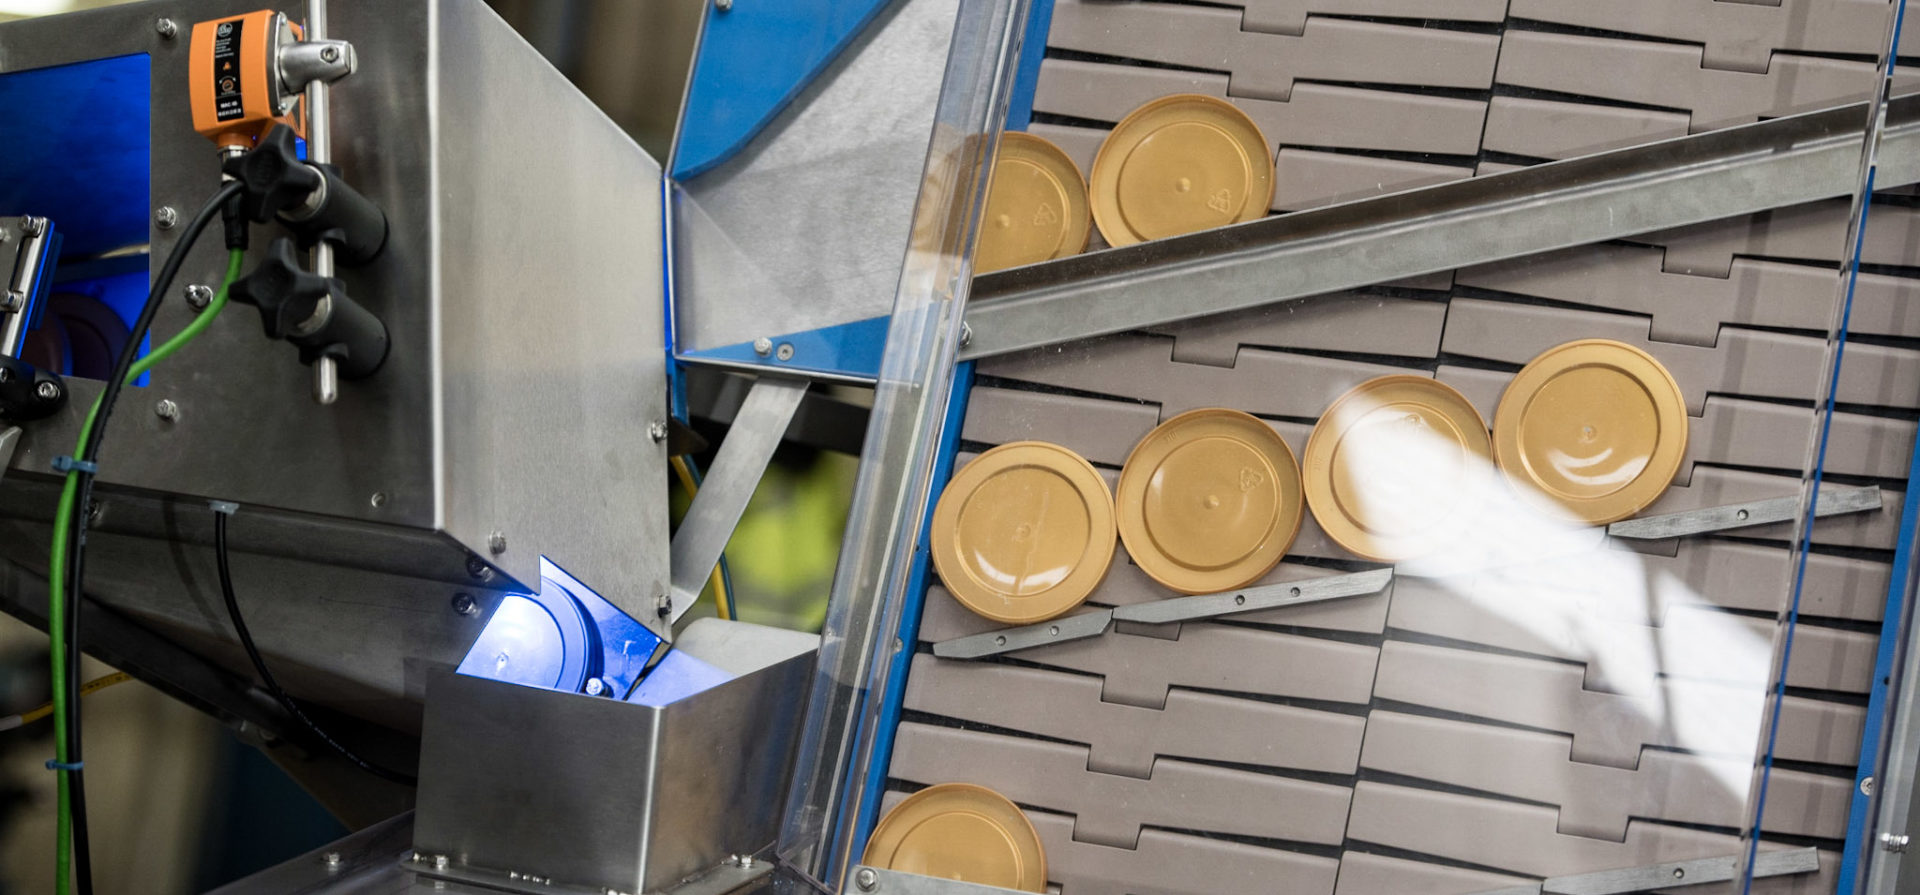 Lidding Sorting Solutions & Lid Capping | Euroflow Automation Ltd